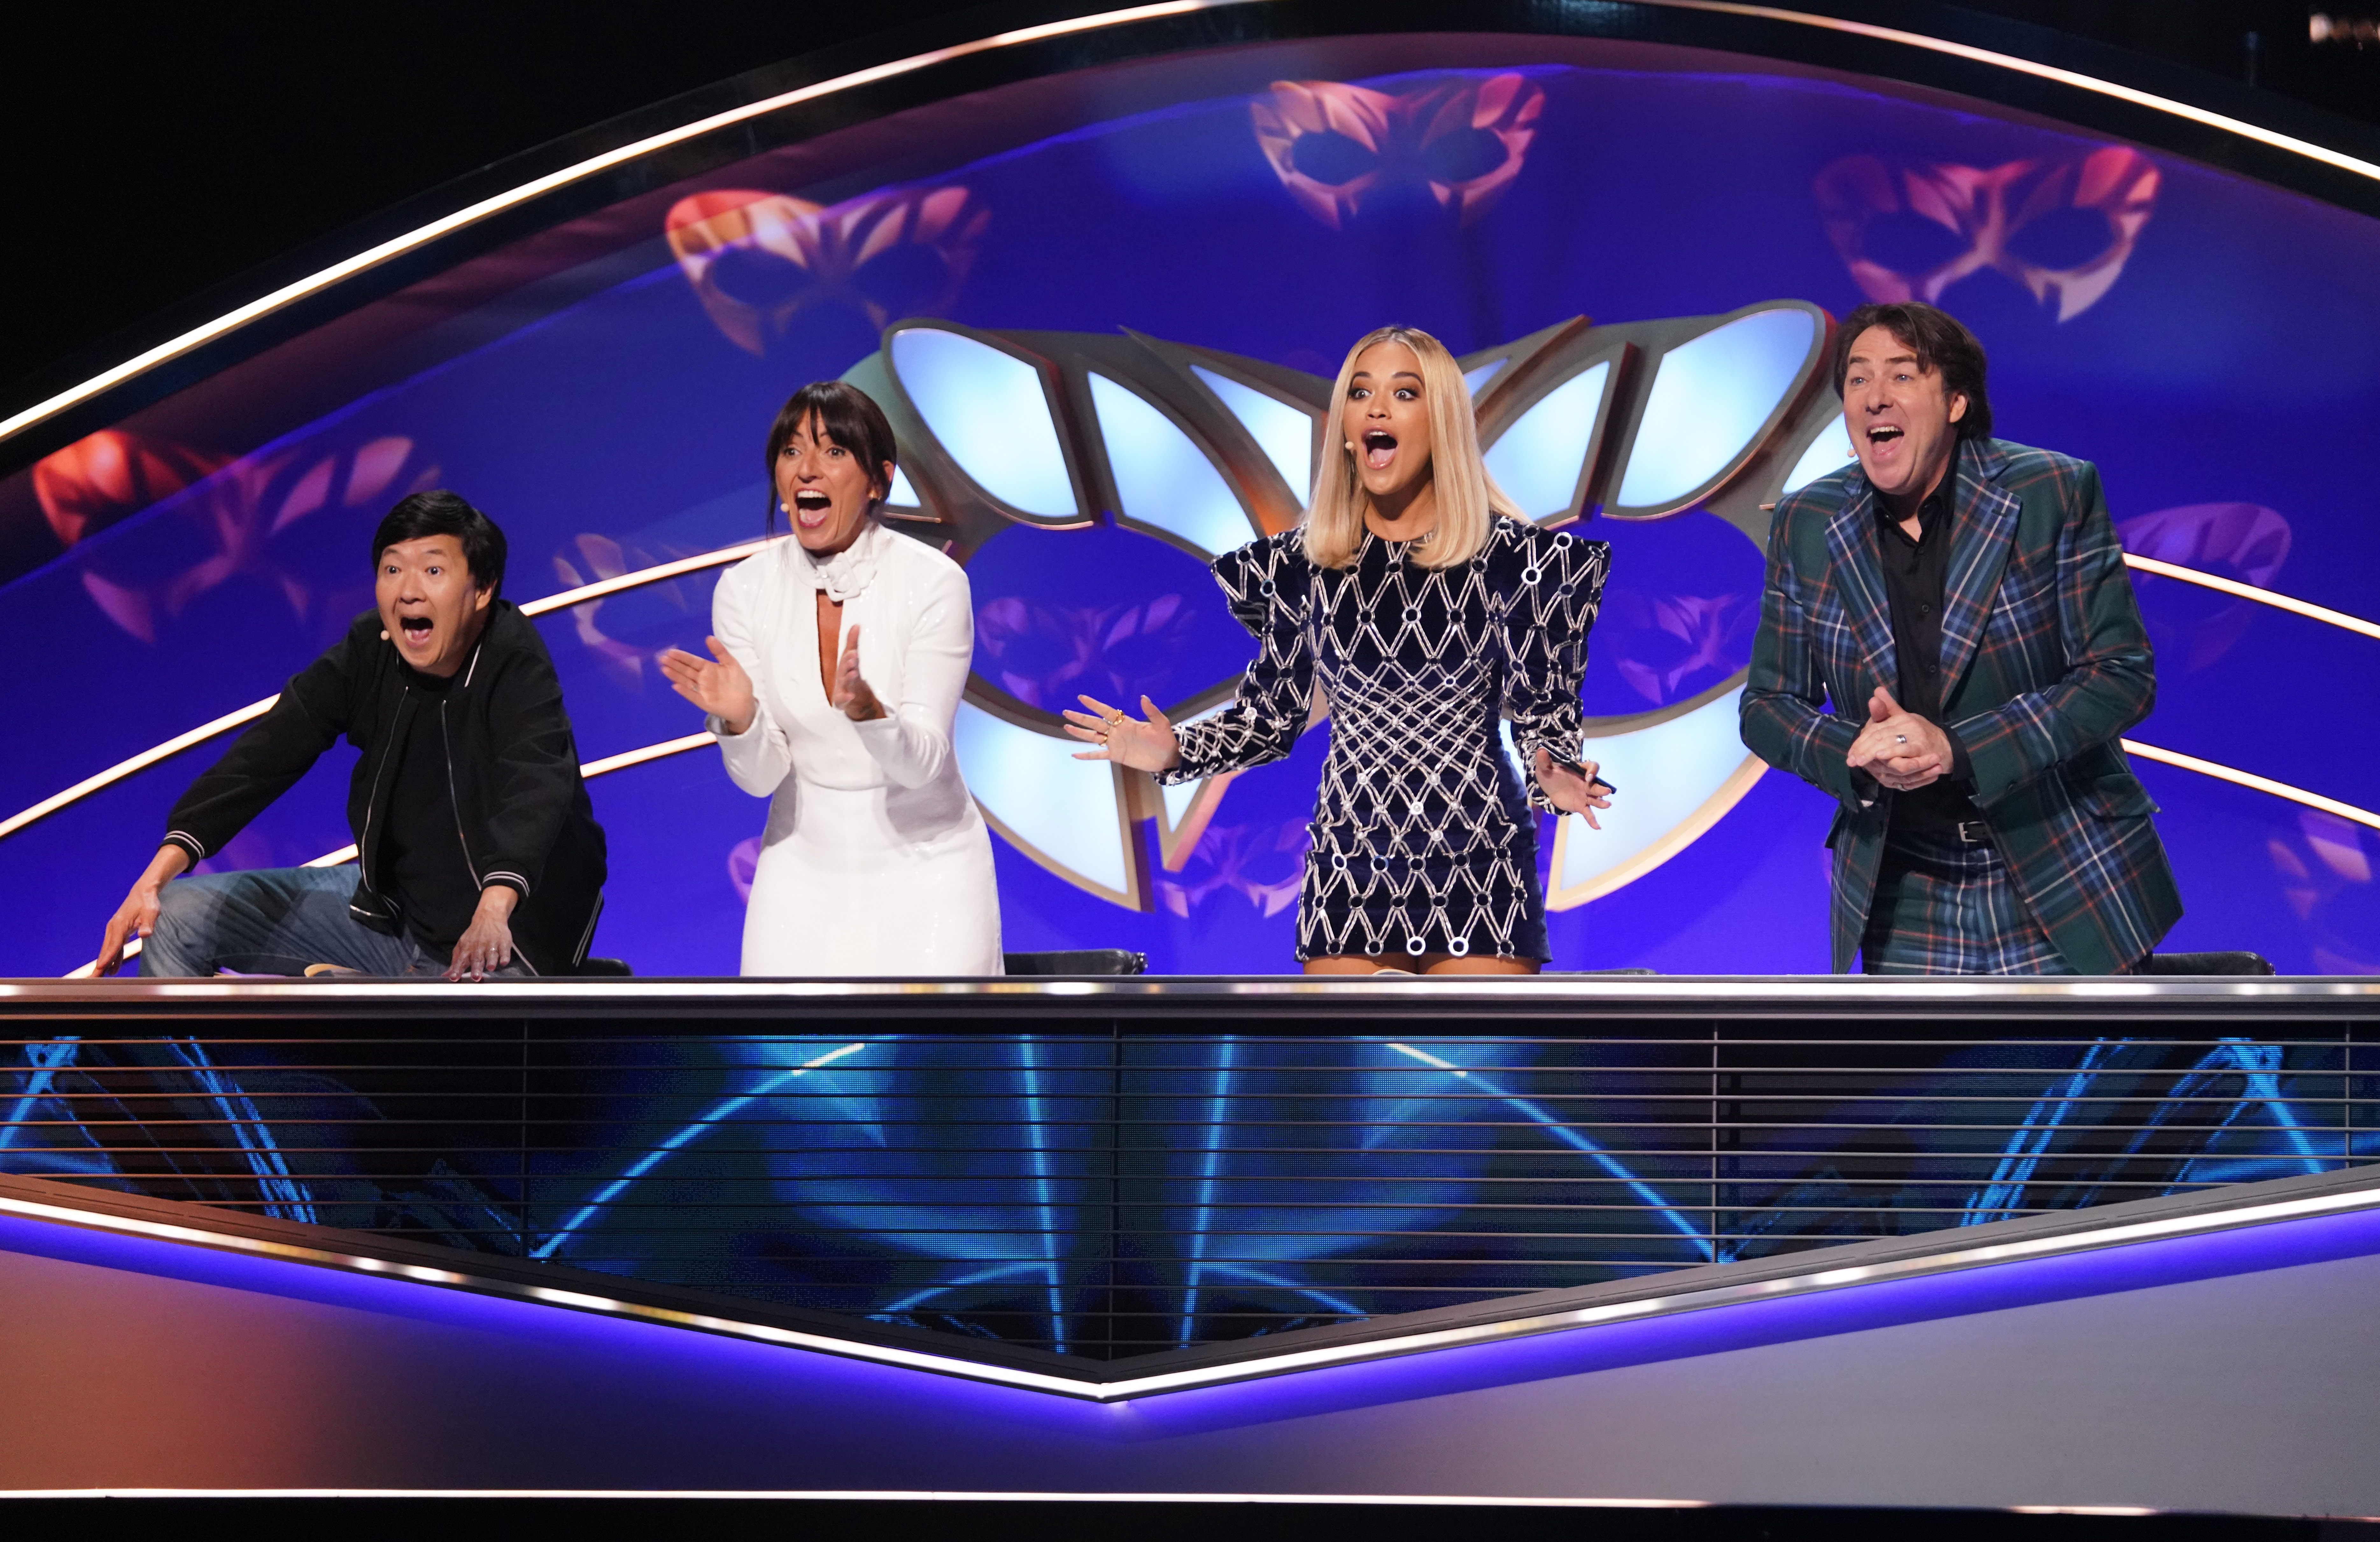 The Masked Singer judges might be surprised at some of the reveals. (ITV/Bandicoot TV)